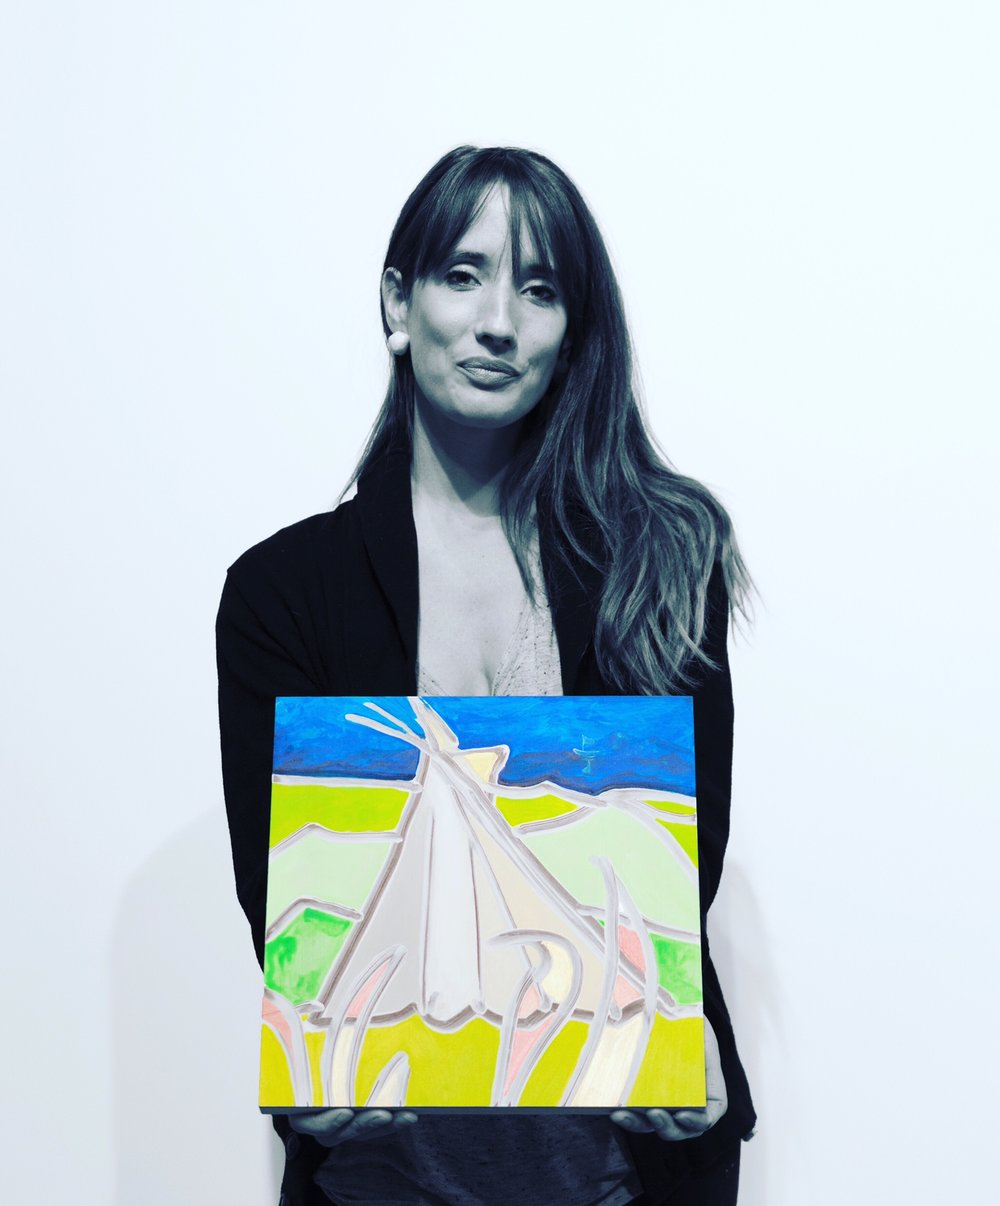 Conversation Project Nyc Jfashion Korean Style Double Layer Blouse Ivanka She Will Also Be Curating A Two Person Painting Show About Looking Featuring The Work Of Matt Phillips And Travis Fairclough Which Opens January 27th At